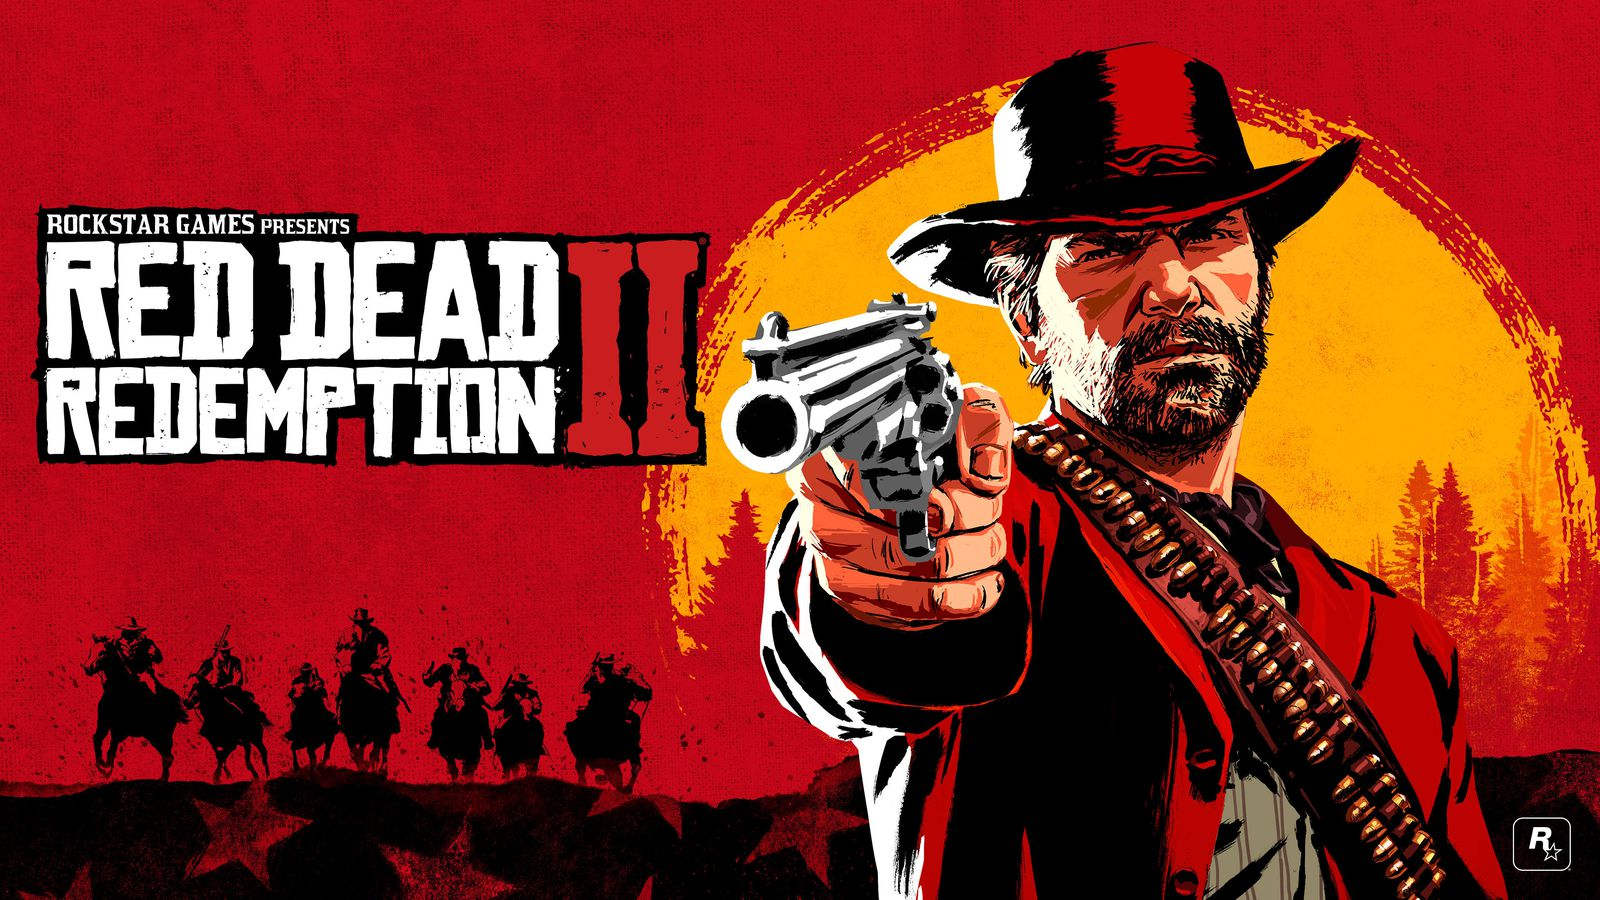 ¡Gamers! A deleitarse con un nuevo gameplay de Red Dead Redemption 2